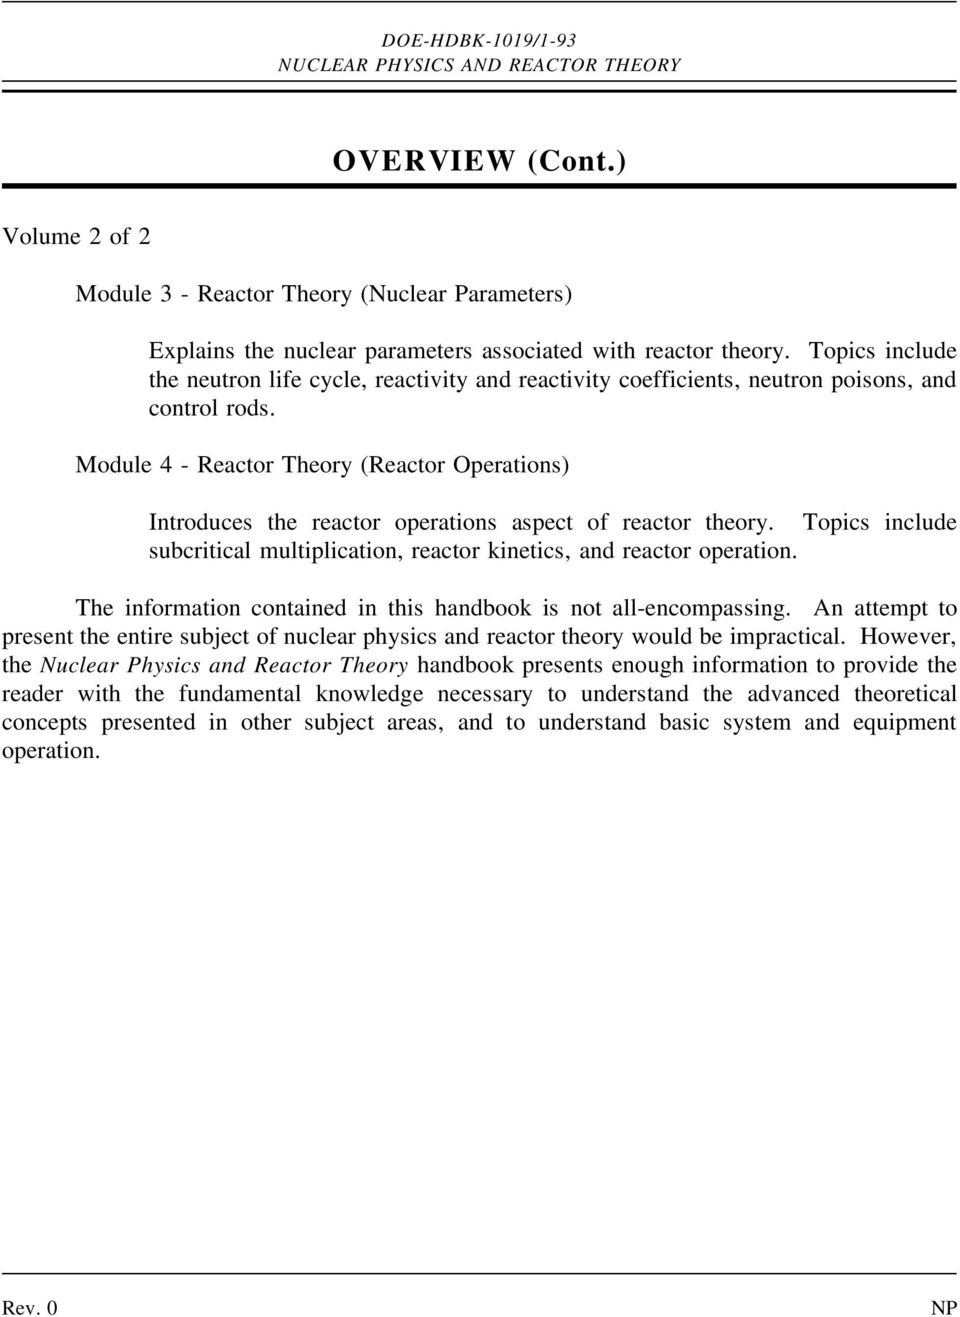 Module 4 - Reactor Theory (Reactor Operations) Introduces the reactor operations aspect of reactor theory. Topics include subcritical multiplication, reactor kinetics, and reactor operation.